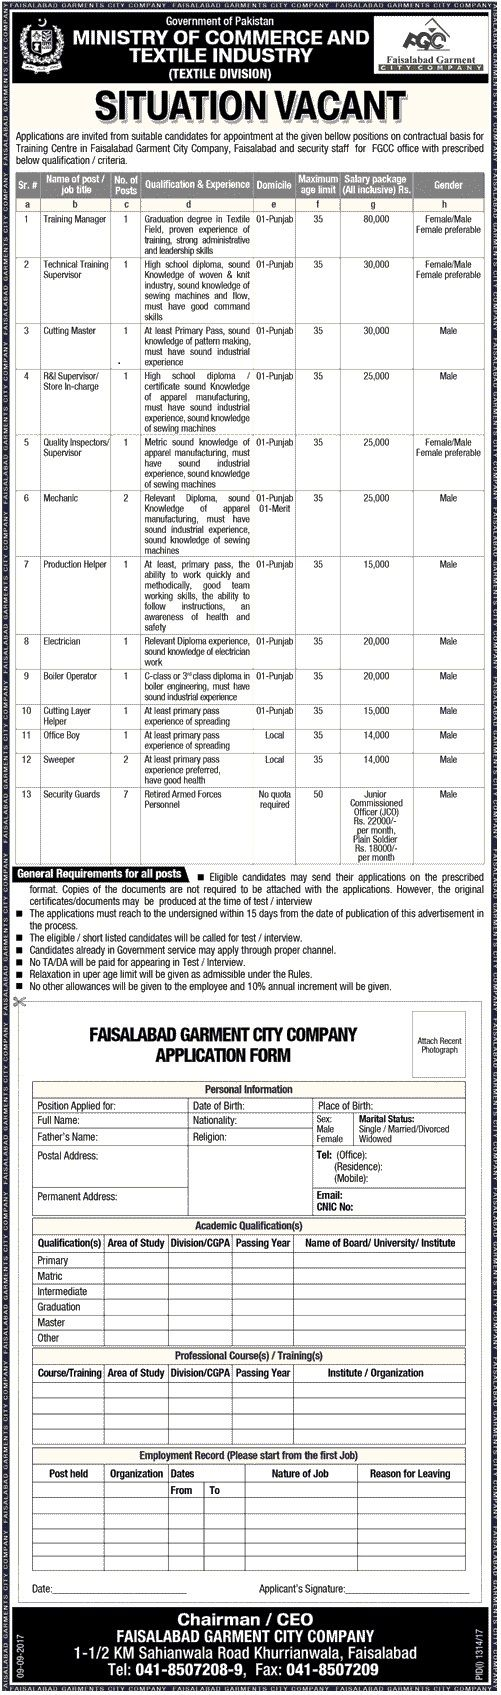 Ministry Of Commerce And Textile Industry Jobs 2017 In Faisalabad For Training Manager And Technical Training Supervisor http://www.jobsfanda.com/ministry-of-commerce-and-textile-industry-jobs-2017-in-faisalabad-for-training-manager-and-technical-training-supervisor/